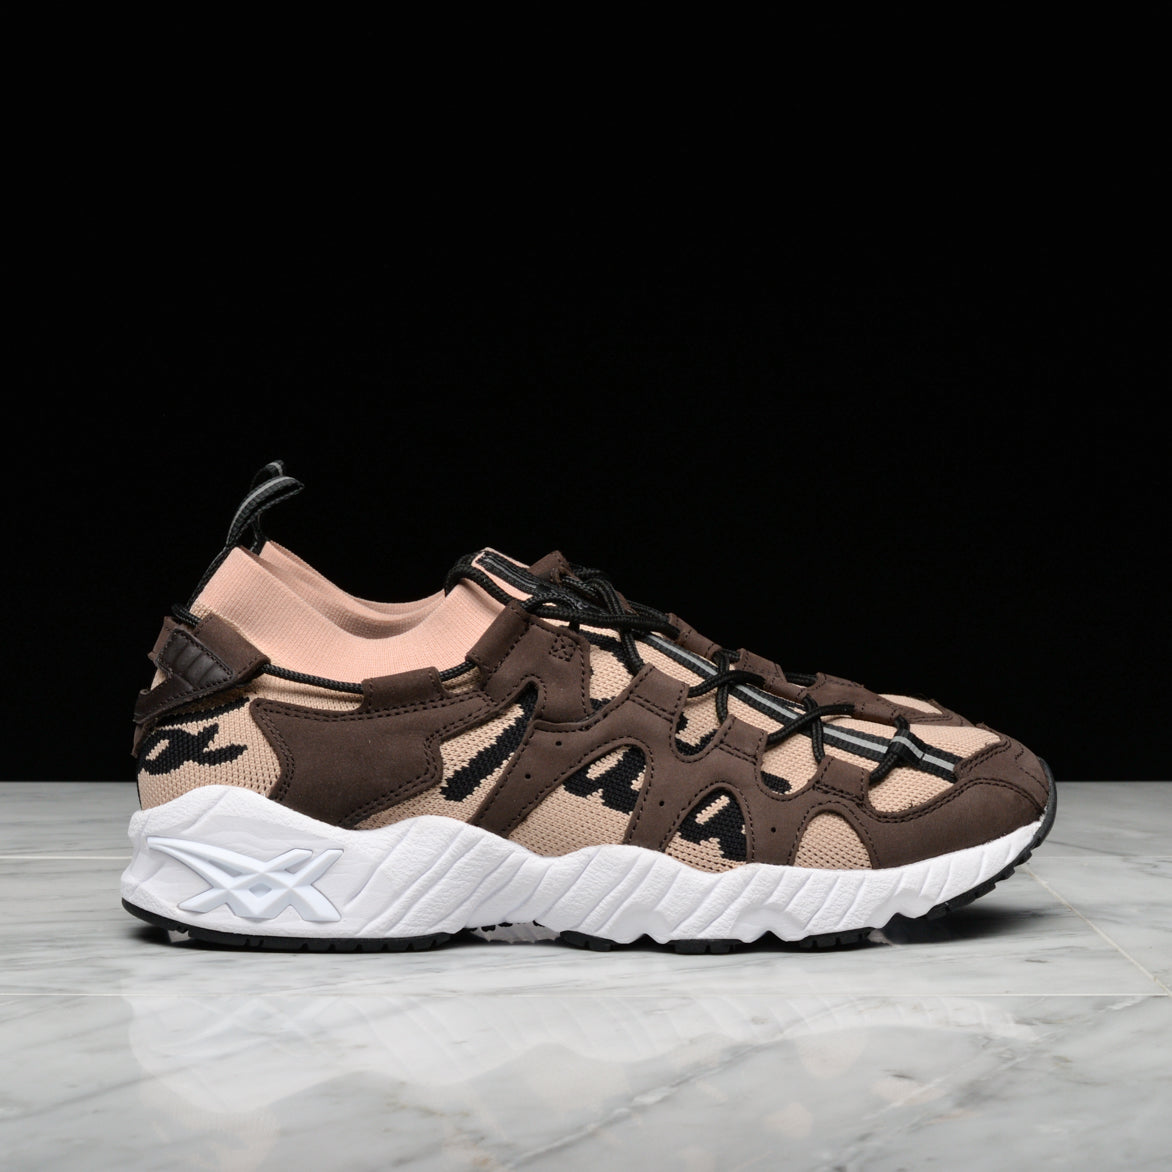 9da110c0914f PATTA x ASICS GEL-MAI KNIT - ROSE CLOUD